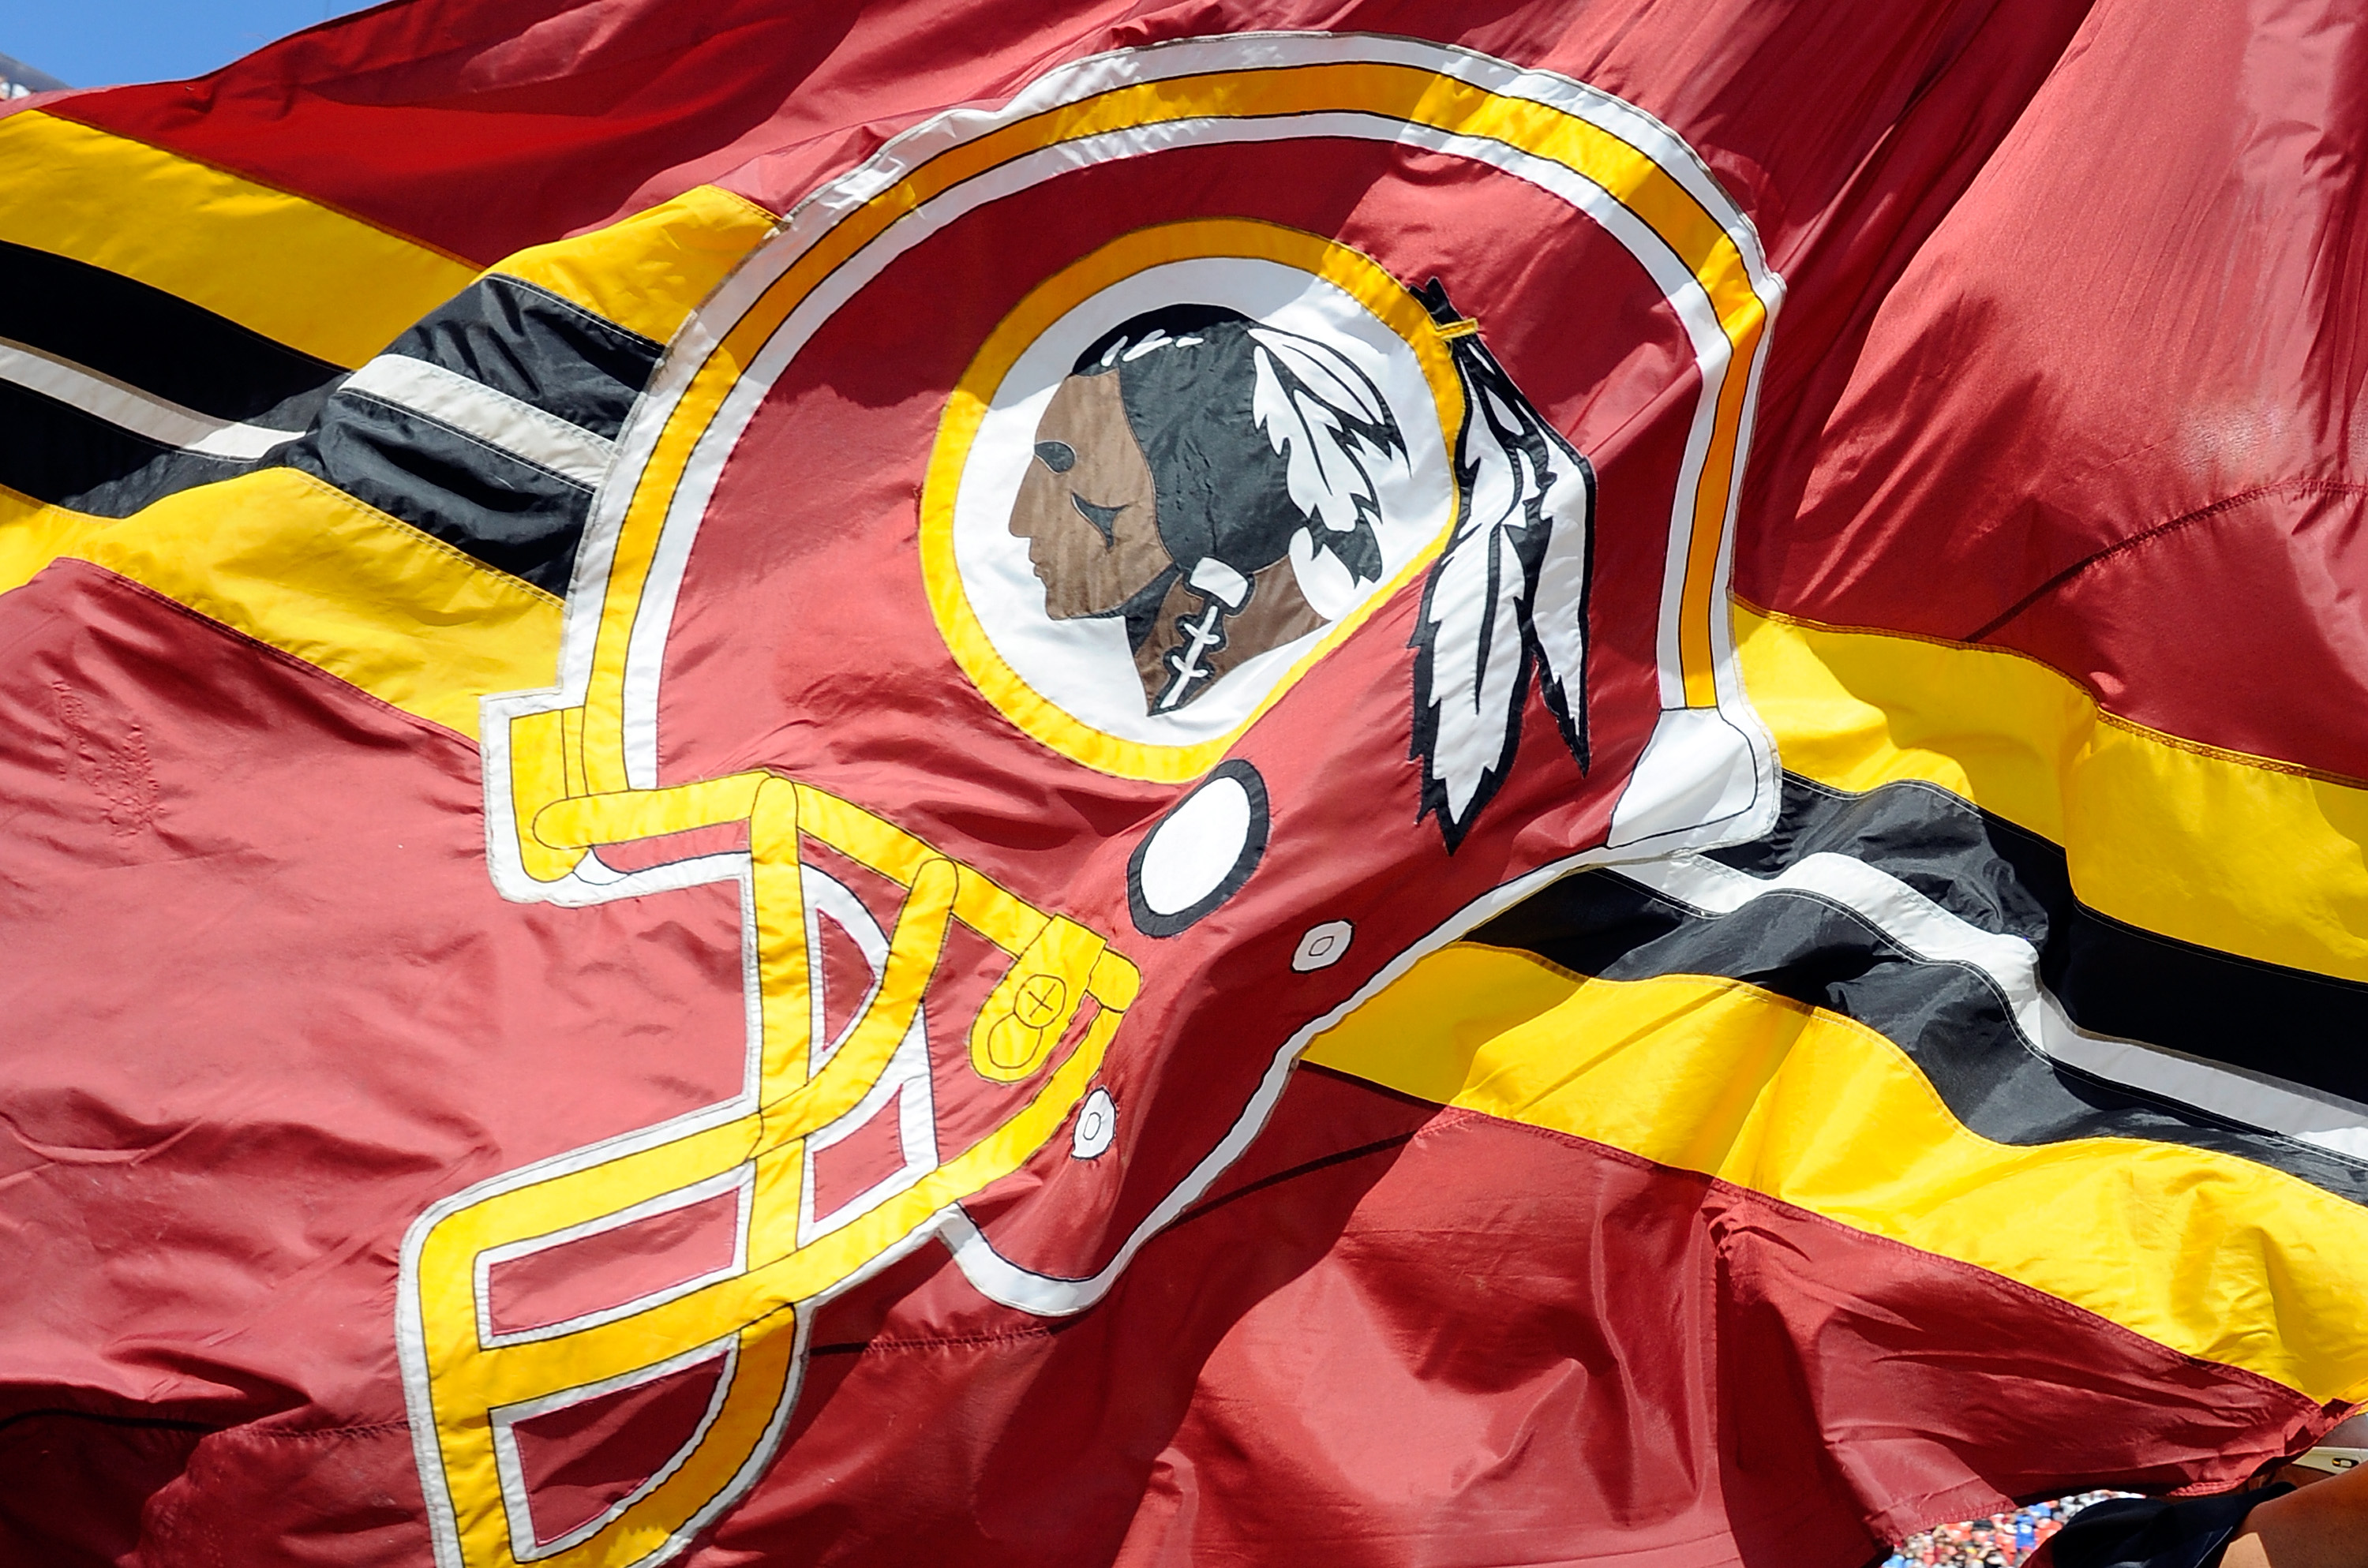 A Washington Redskins flag on the field before the game against the Detroit Lions at FedExField on September 22, 2013 in Landover, Maryland.